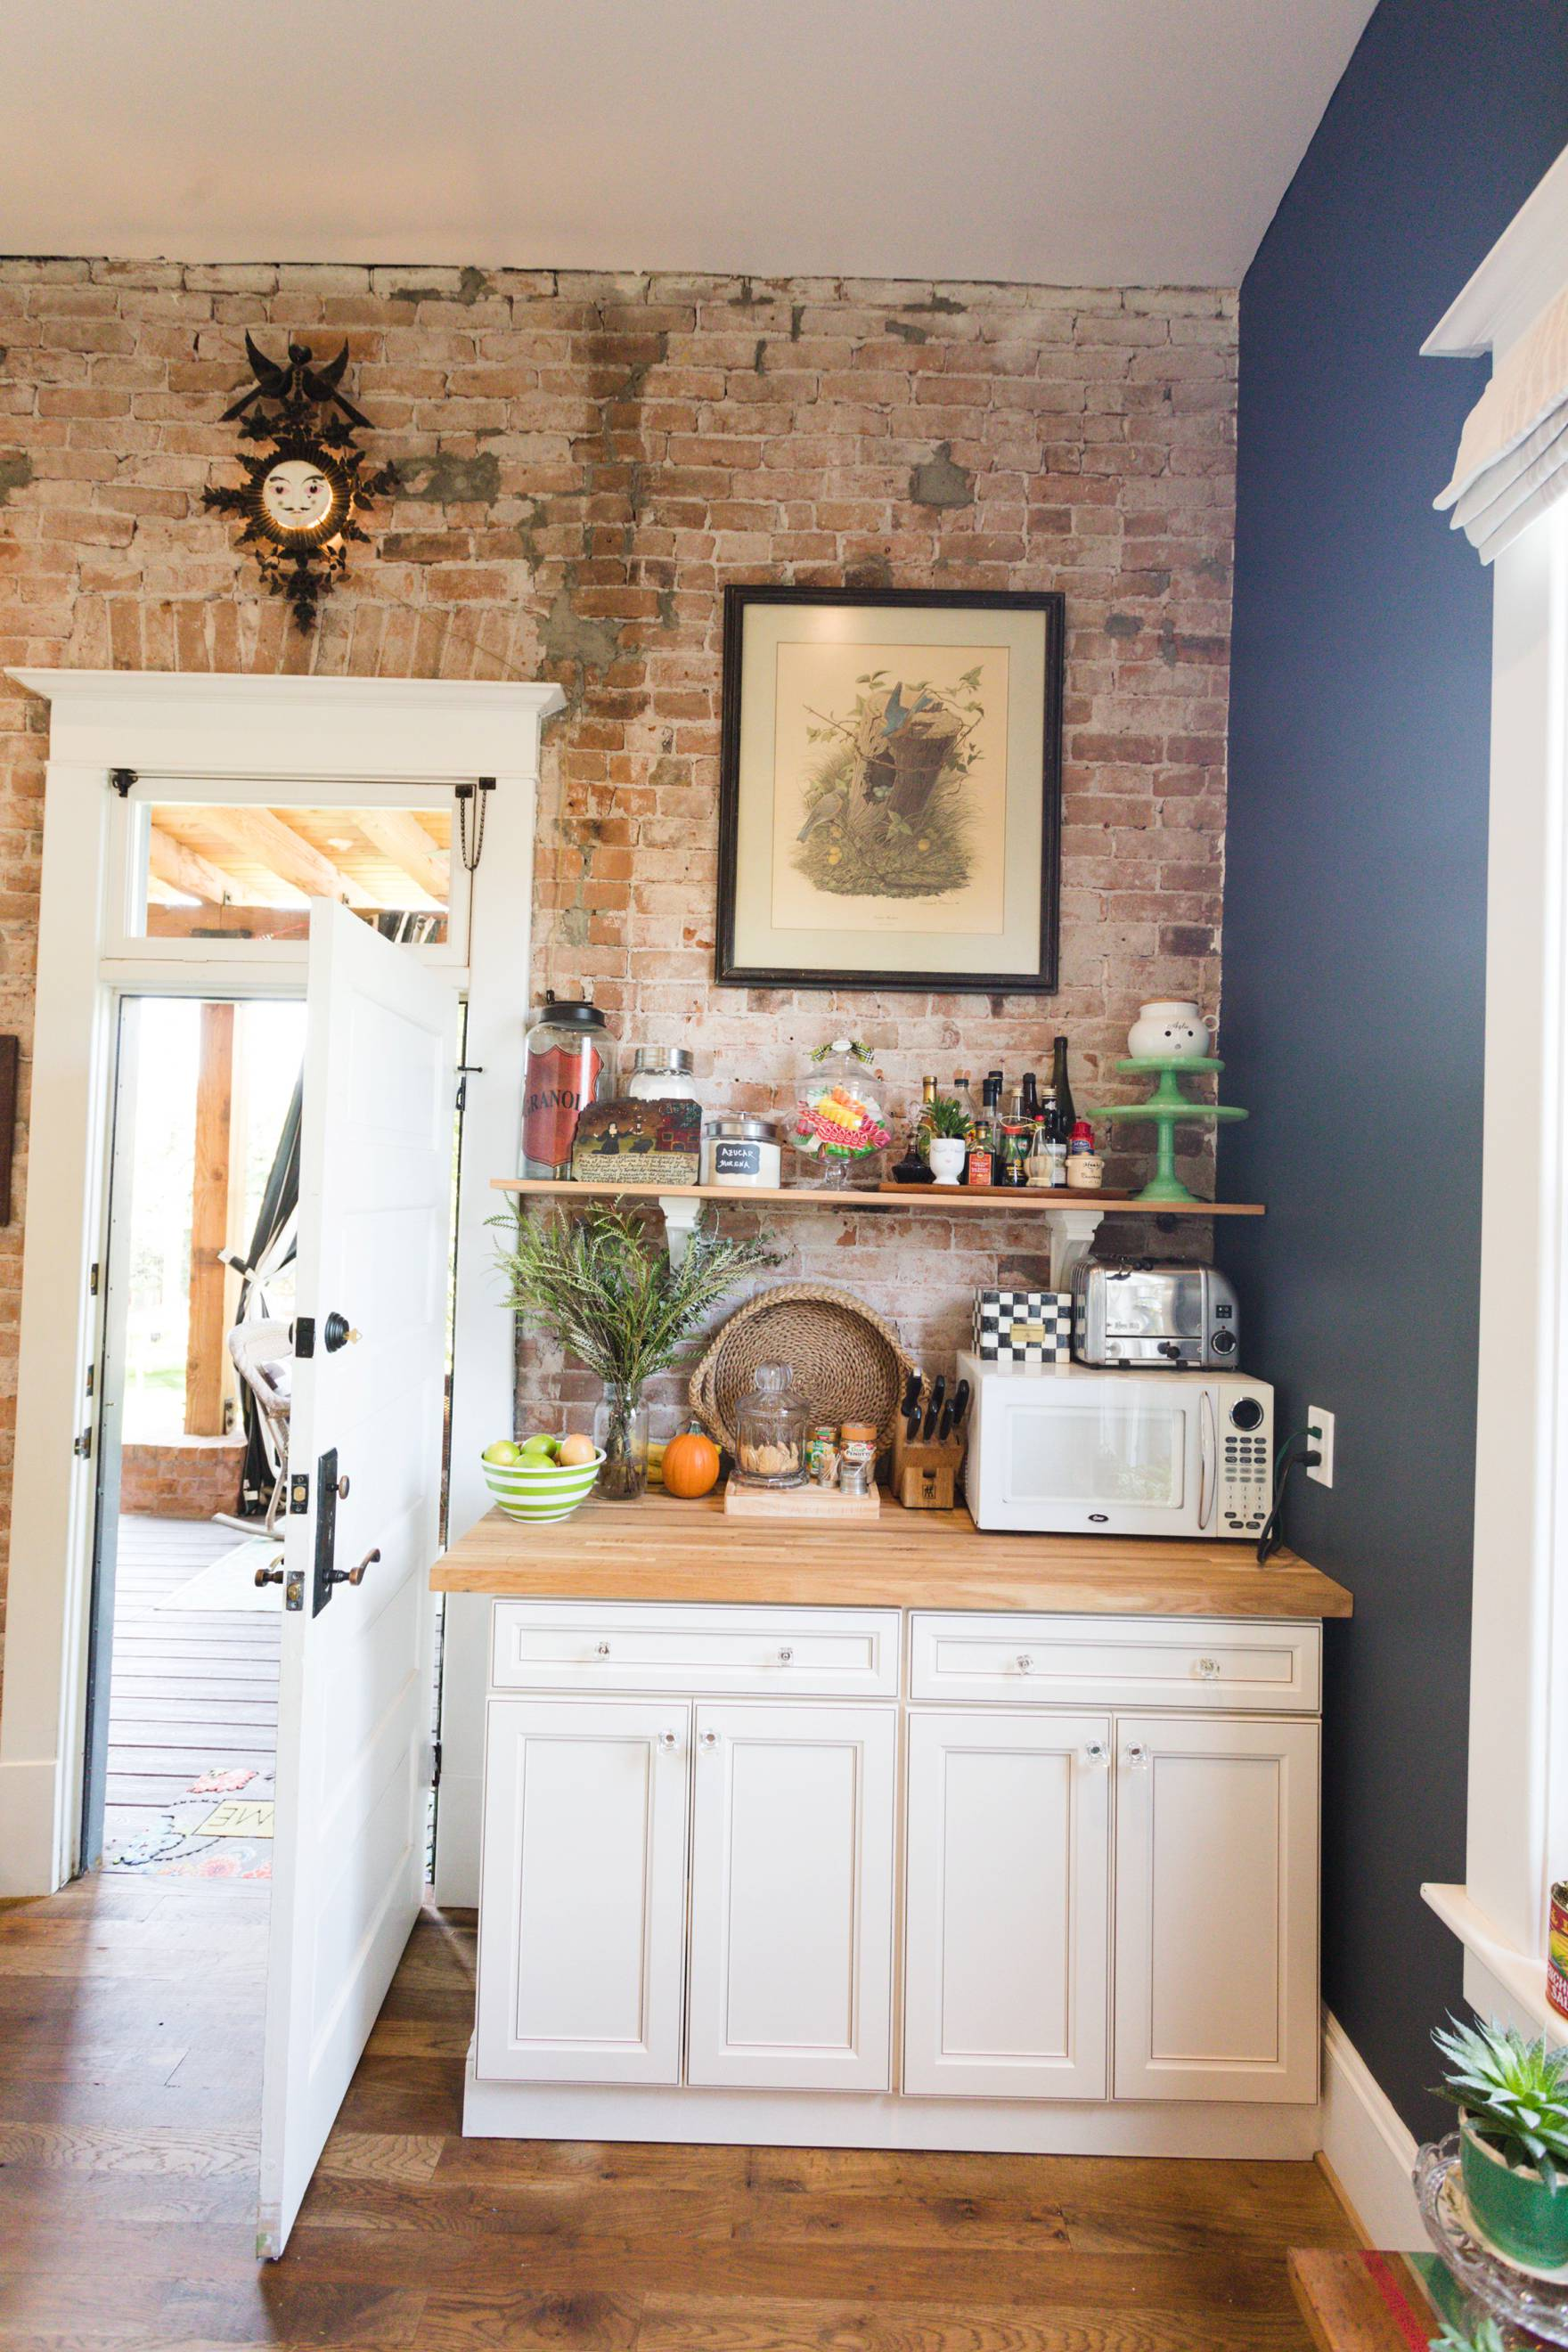 Home Tour of Boho Farm and Home in Downtown Phoenix - cottage brick style home from 1903 living room to kitchen details, exposed brick transom above the doors